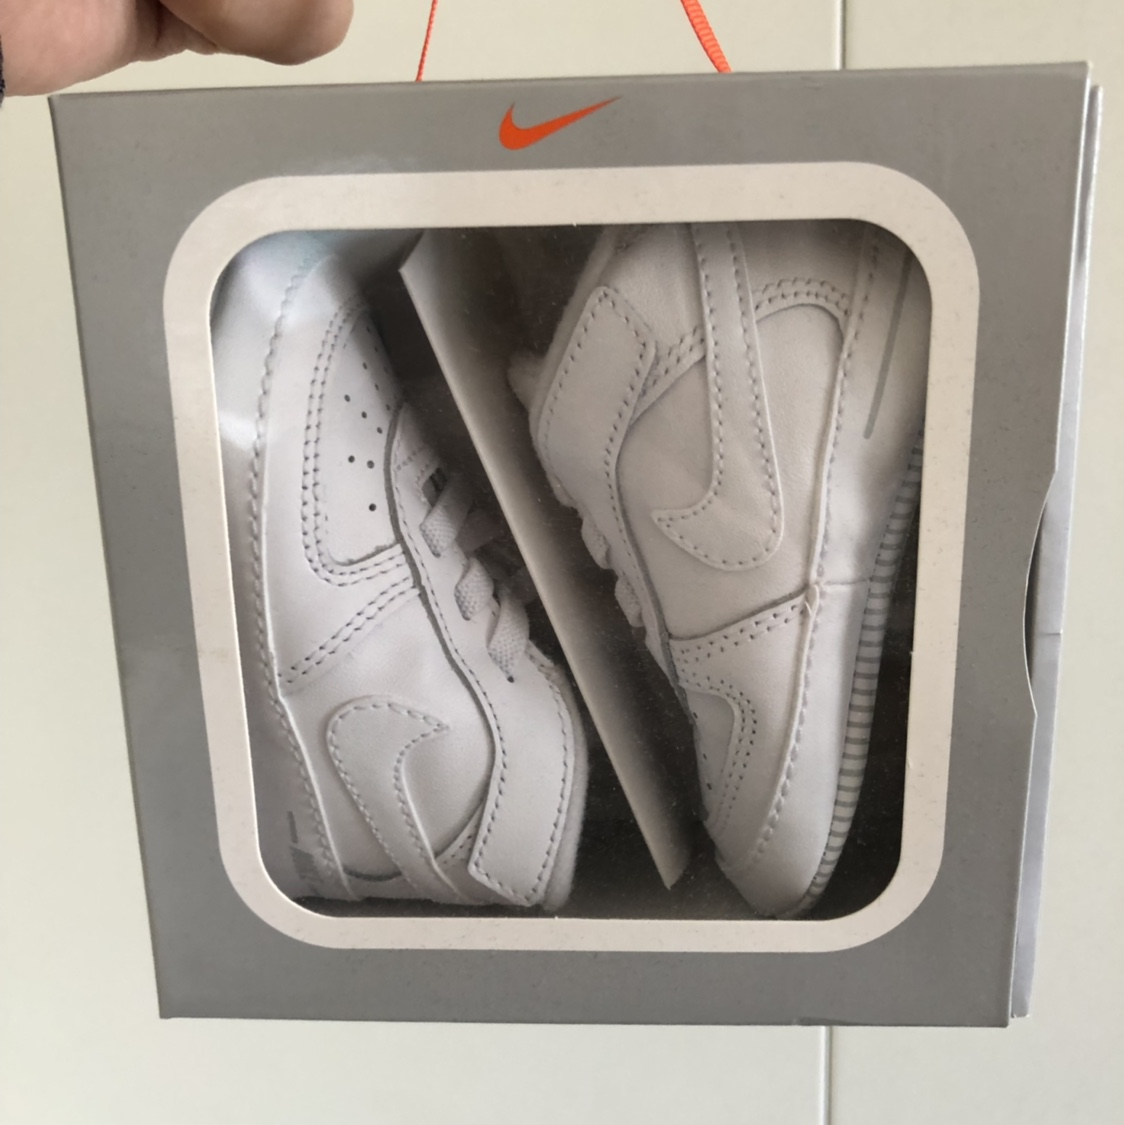 Nike Air Force 1 crib shoes for babies